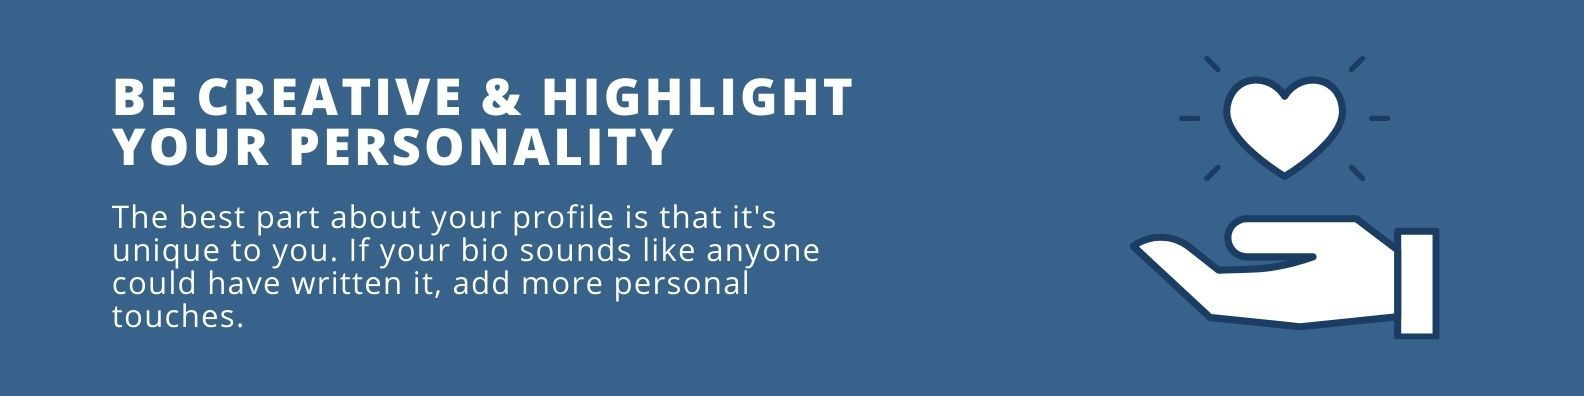 Be Creative and Highlight Your Personality